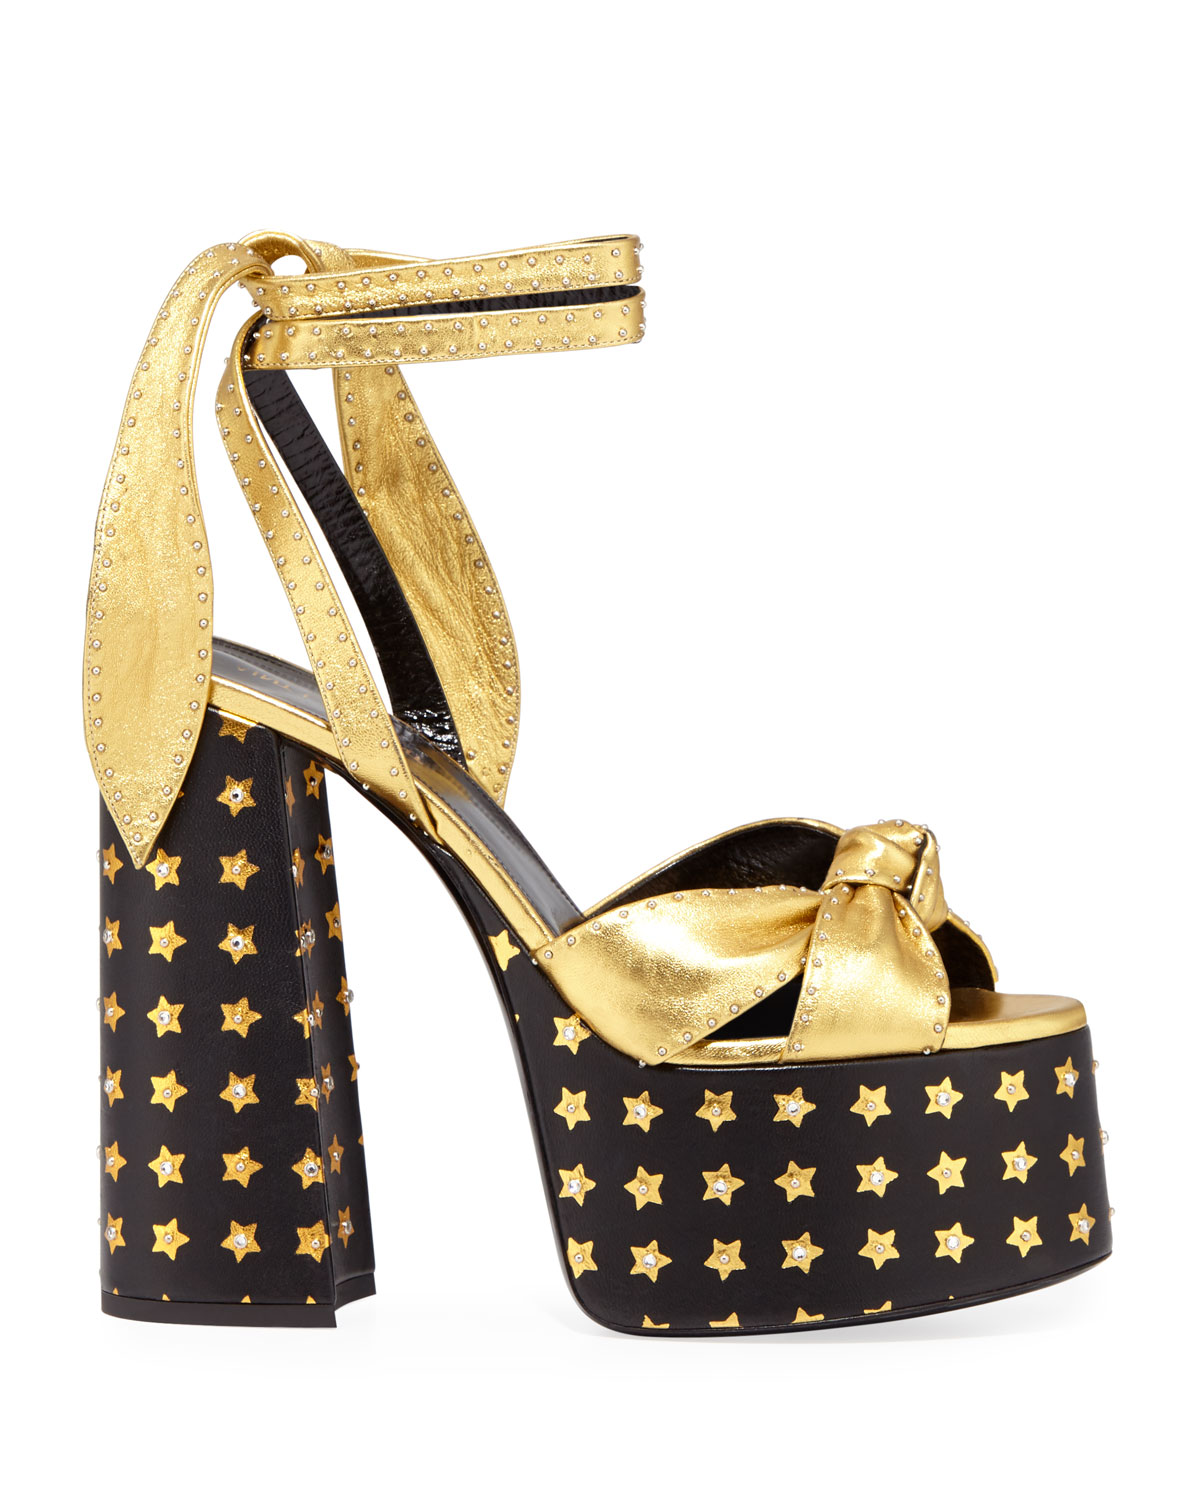 34231db5cae Saint Laurent Paige Star Platform Sandals In Gold